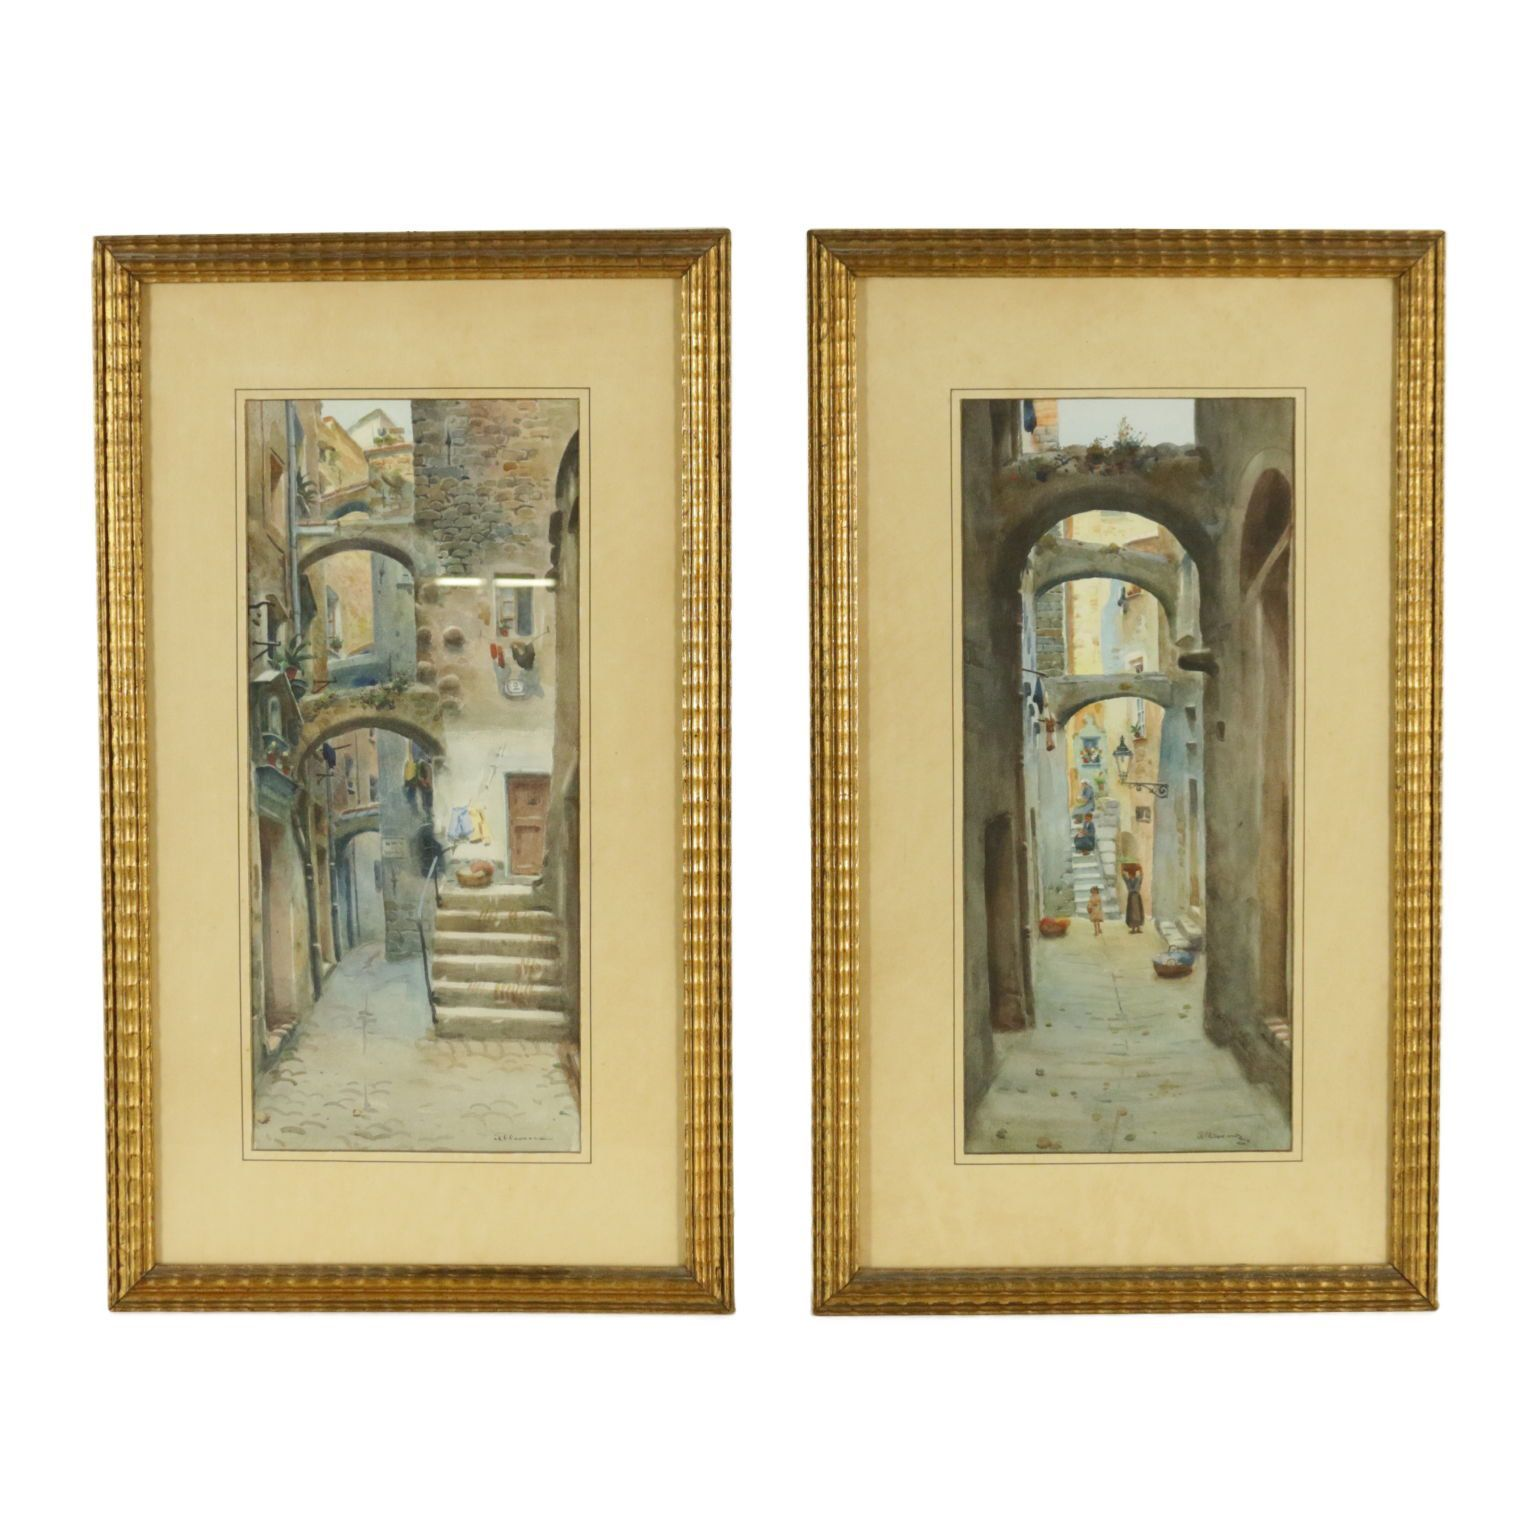 art dessin #art Kunst: Pair of watercolors by Michele Allavena A pair of watercolors on paper depicting Sanremo alleys and painted by Michele Allavena (1863-1949). Both signed in the lower right corner. Presented in coeval frame. 20th century. Wear consistent with age and use. Any damage or loss is displayed as completely as possible in the pictures.